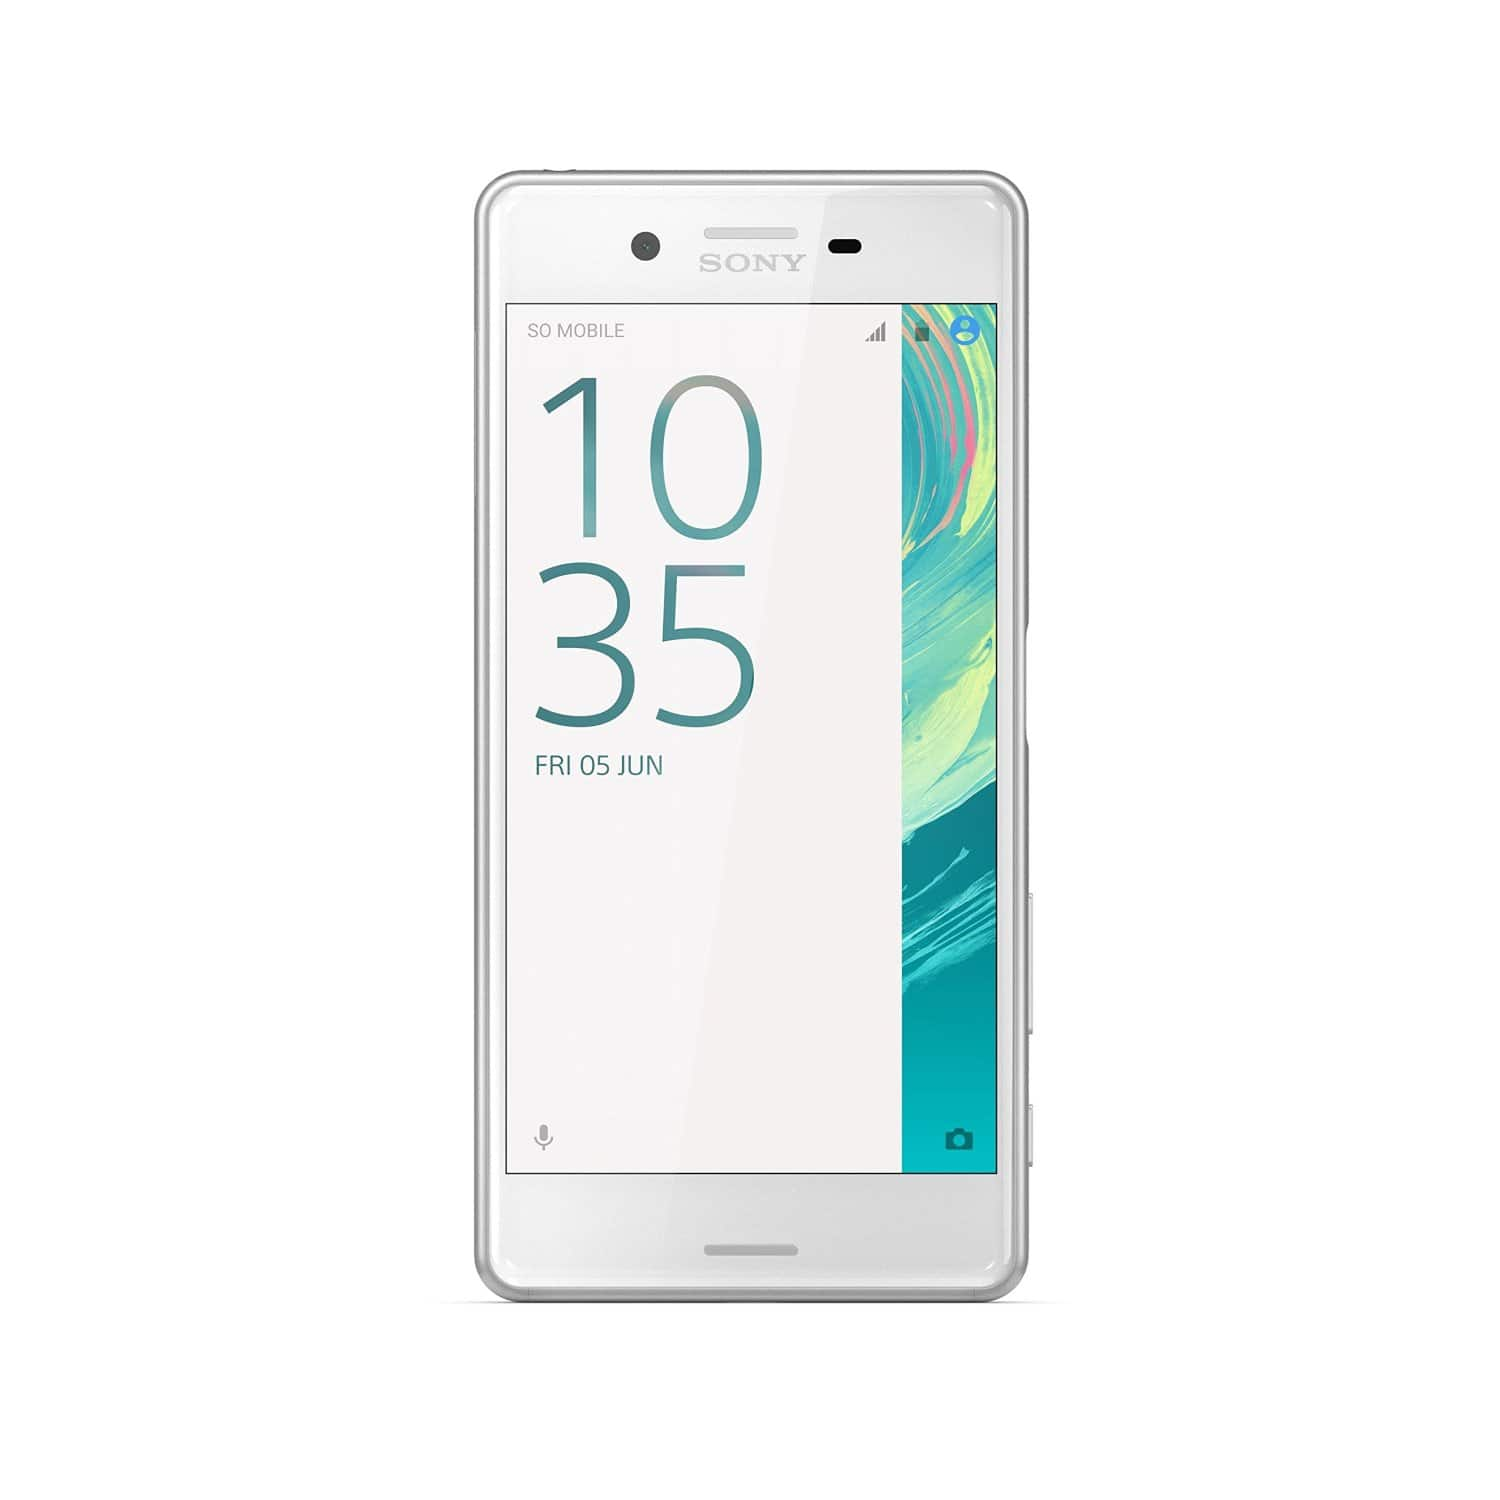 Sony  Xperia X, Xperia XA, and the Xperia X Performance in Amazon's Deal of the Day - 20-25% off $199-$499